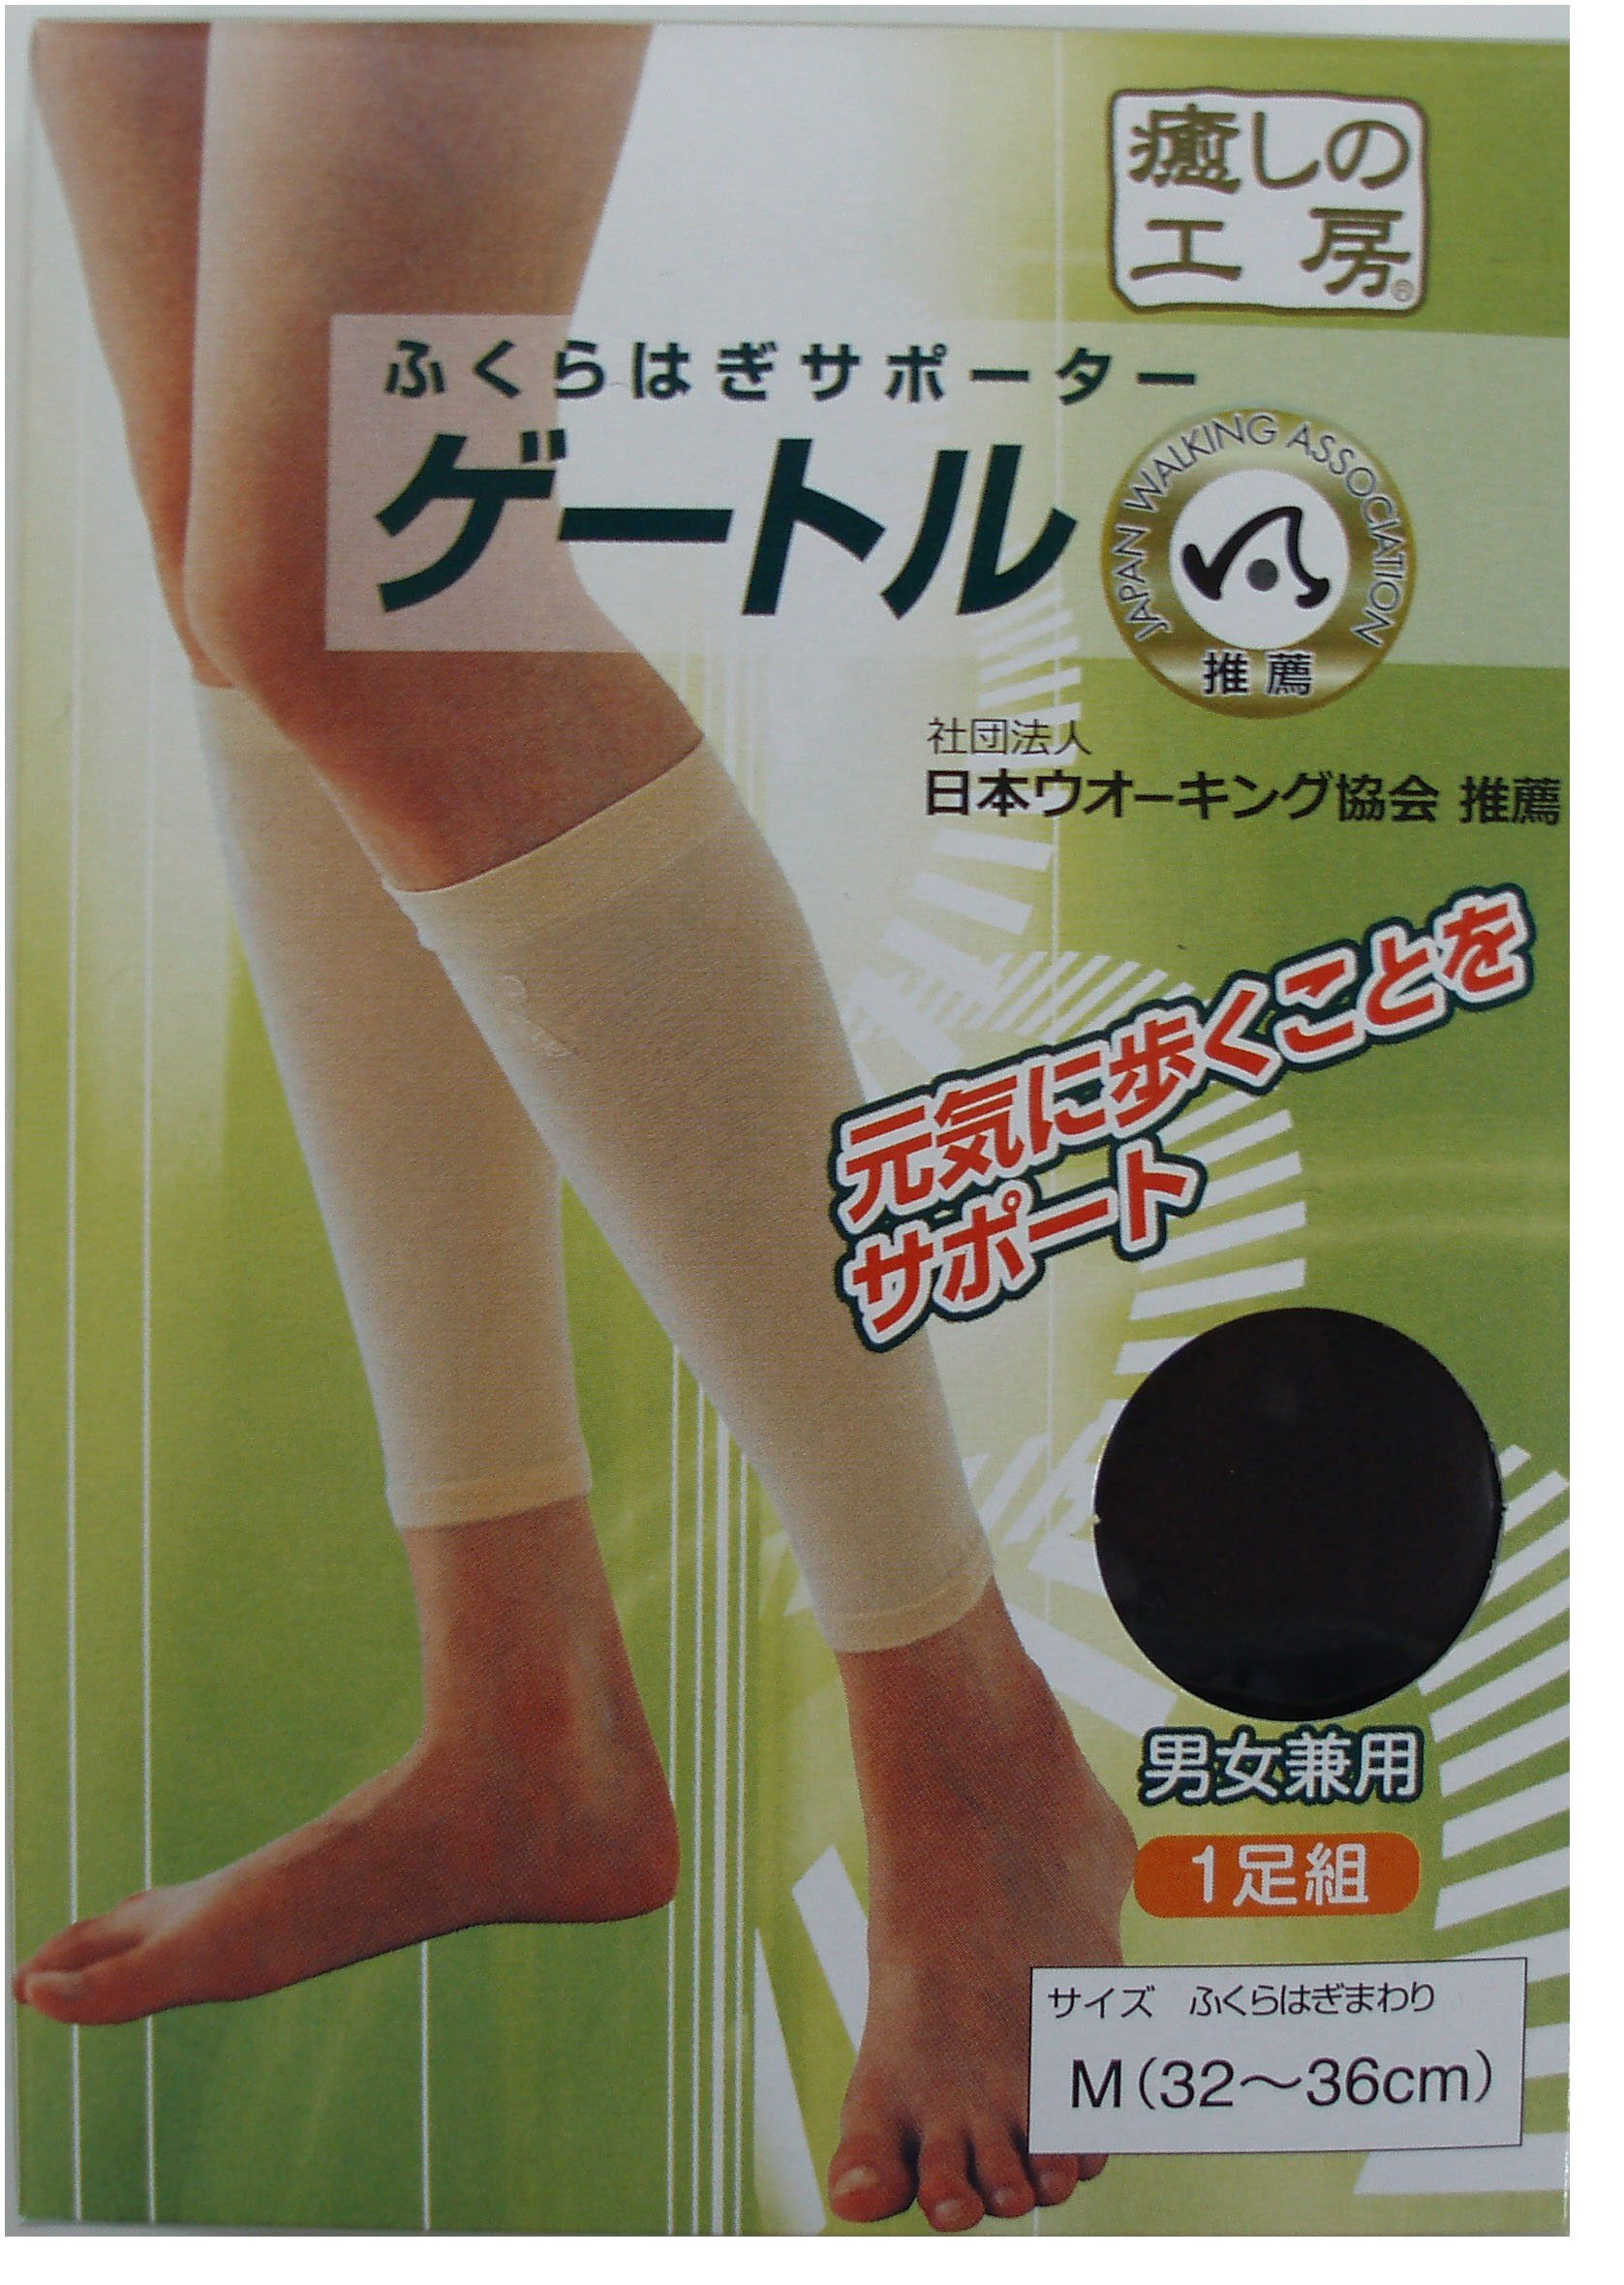 Calf Compression Leg Supporters Health and Walking Japan Bico (Medium, Black)